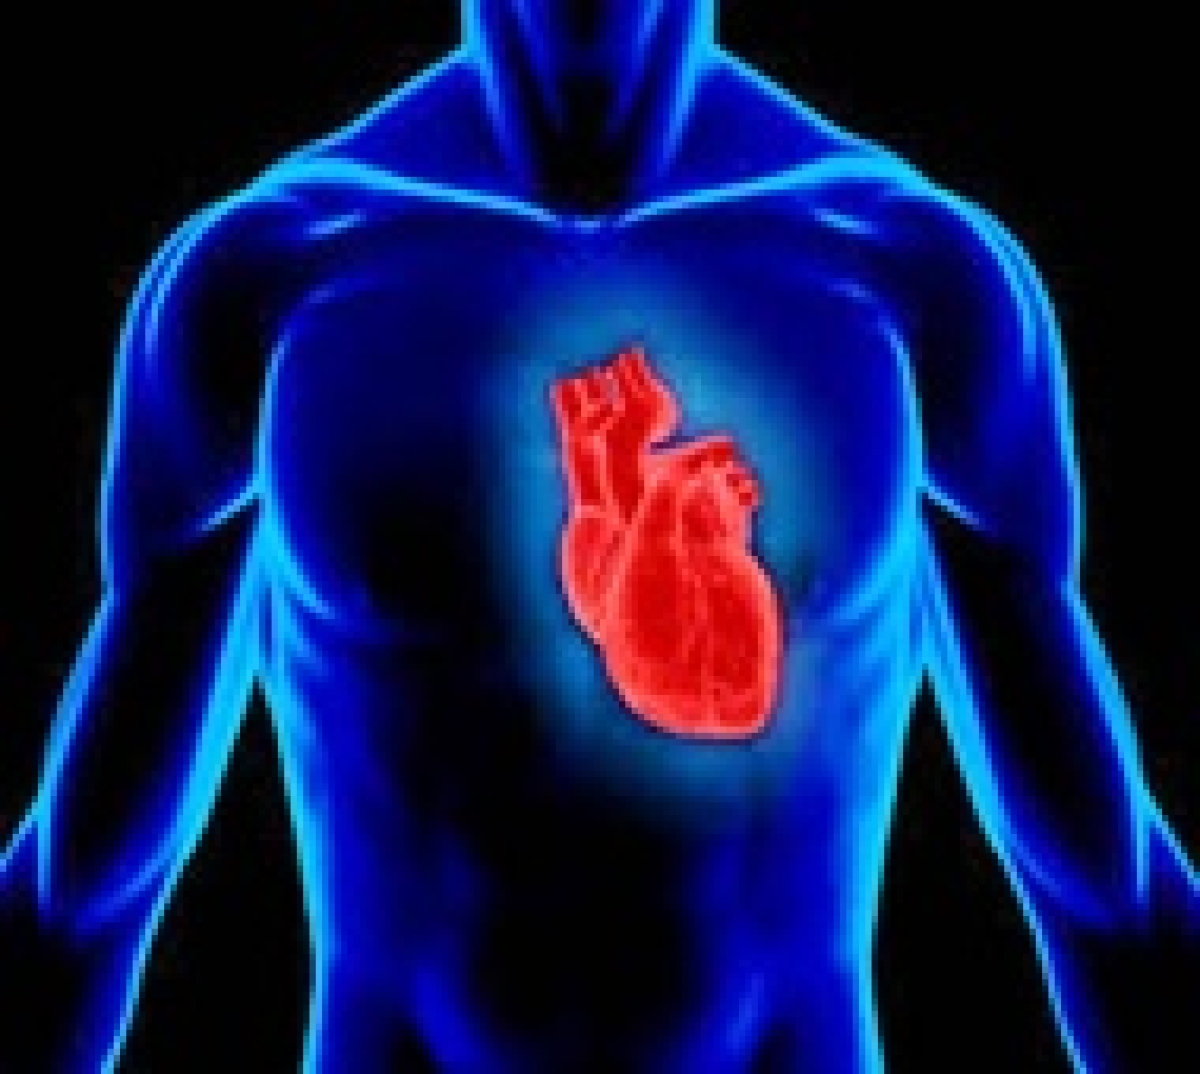 Switching off a gene may reduce heart attack risk